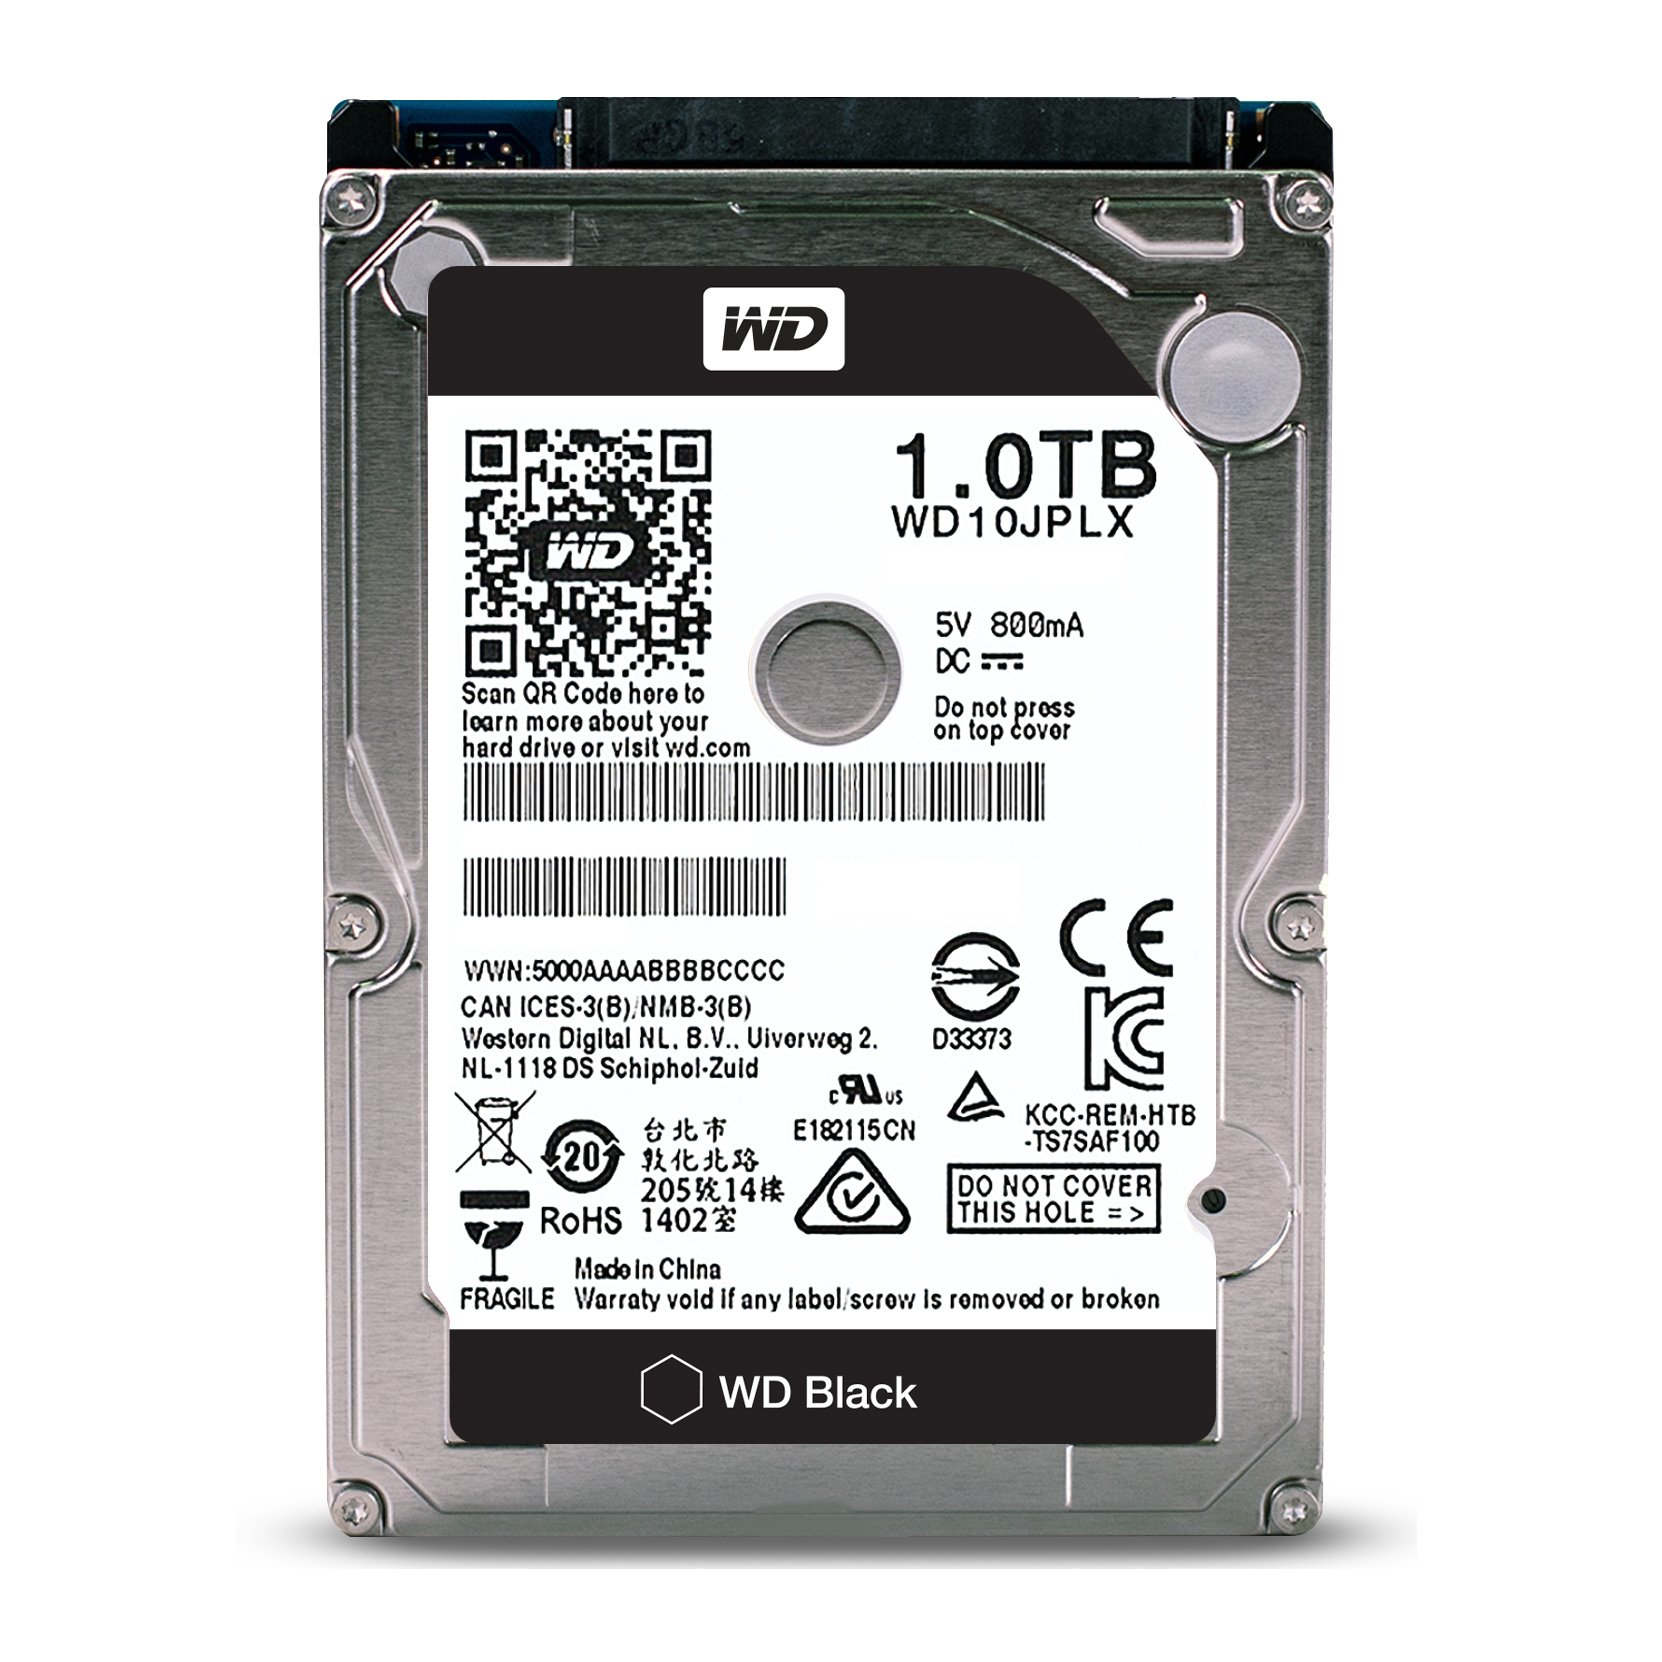 WD Black 1TB Performance Mobile Hard Disk Drive - 7200 RPM SATA 6 Gb/s 32MB Cache 9.5 MM 2.5 Inch - WD10JPLX by Western Digital